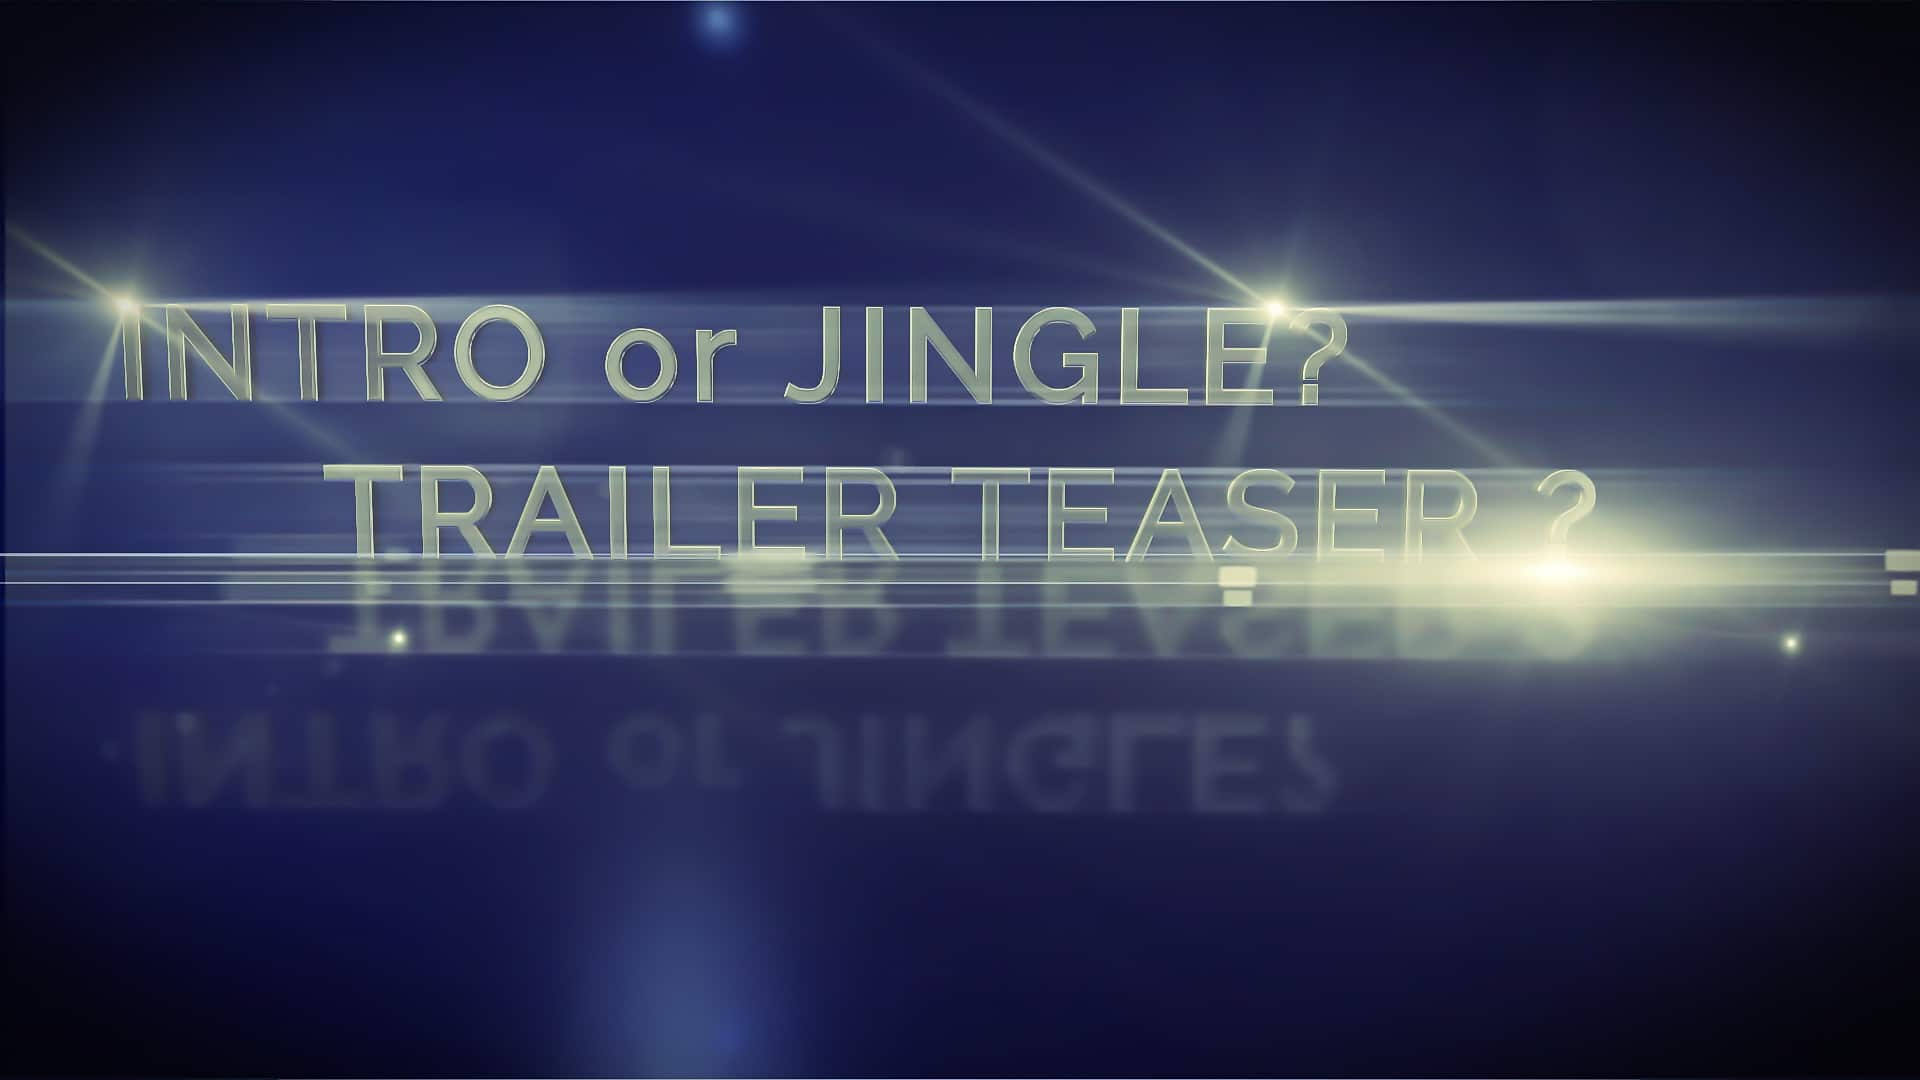 Intro Jingle Trailer or Teaser?